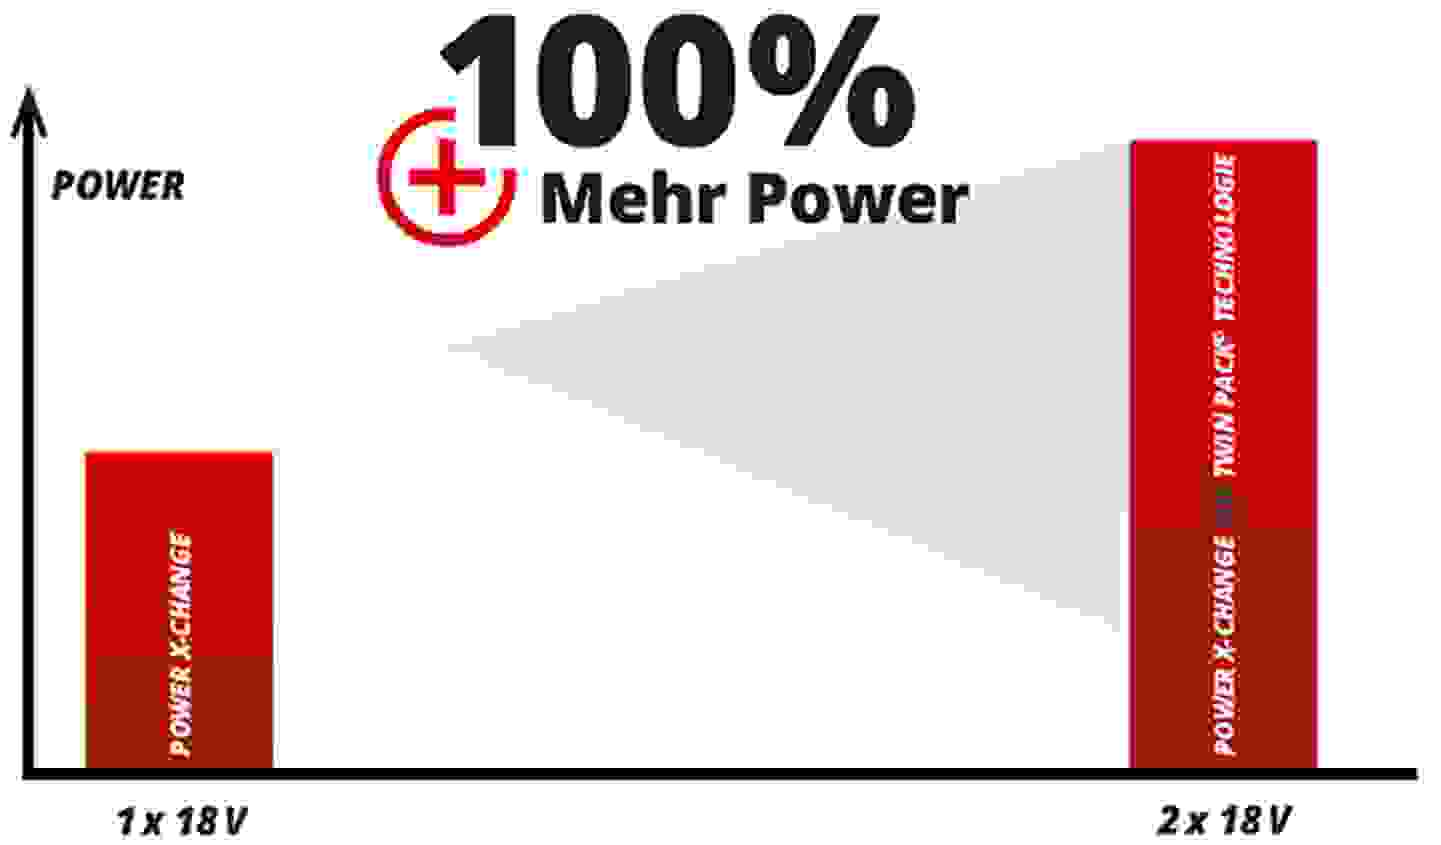 100% mehr Power